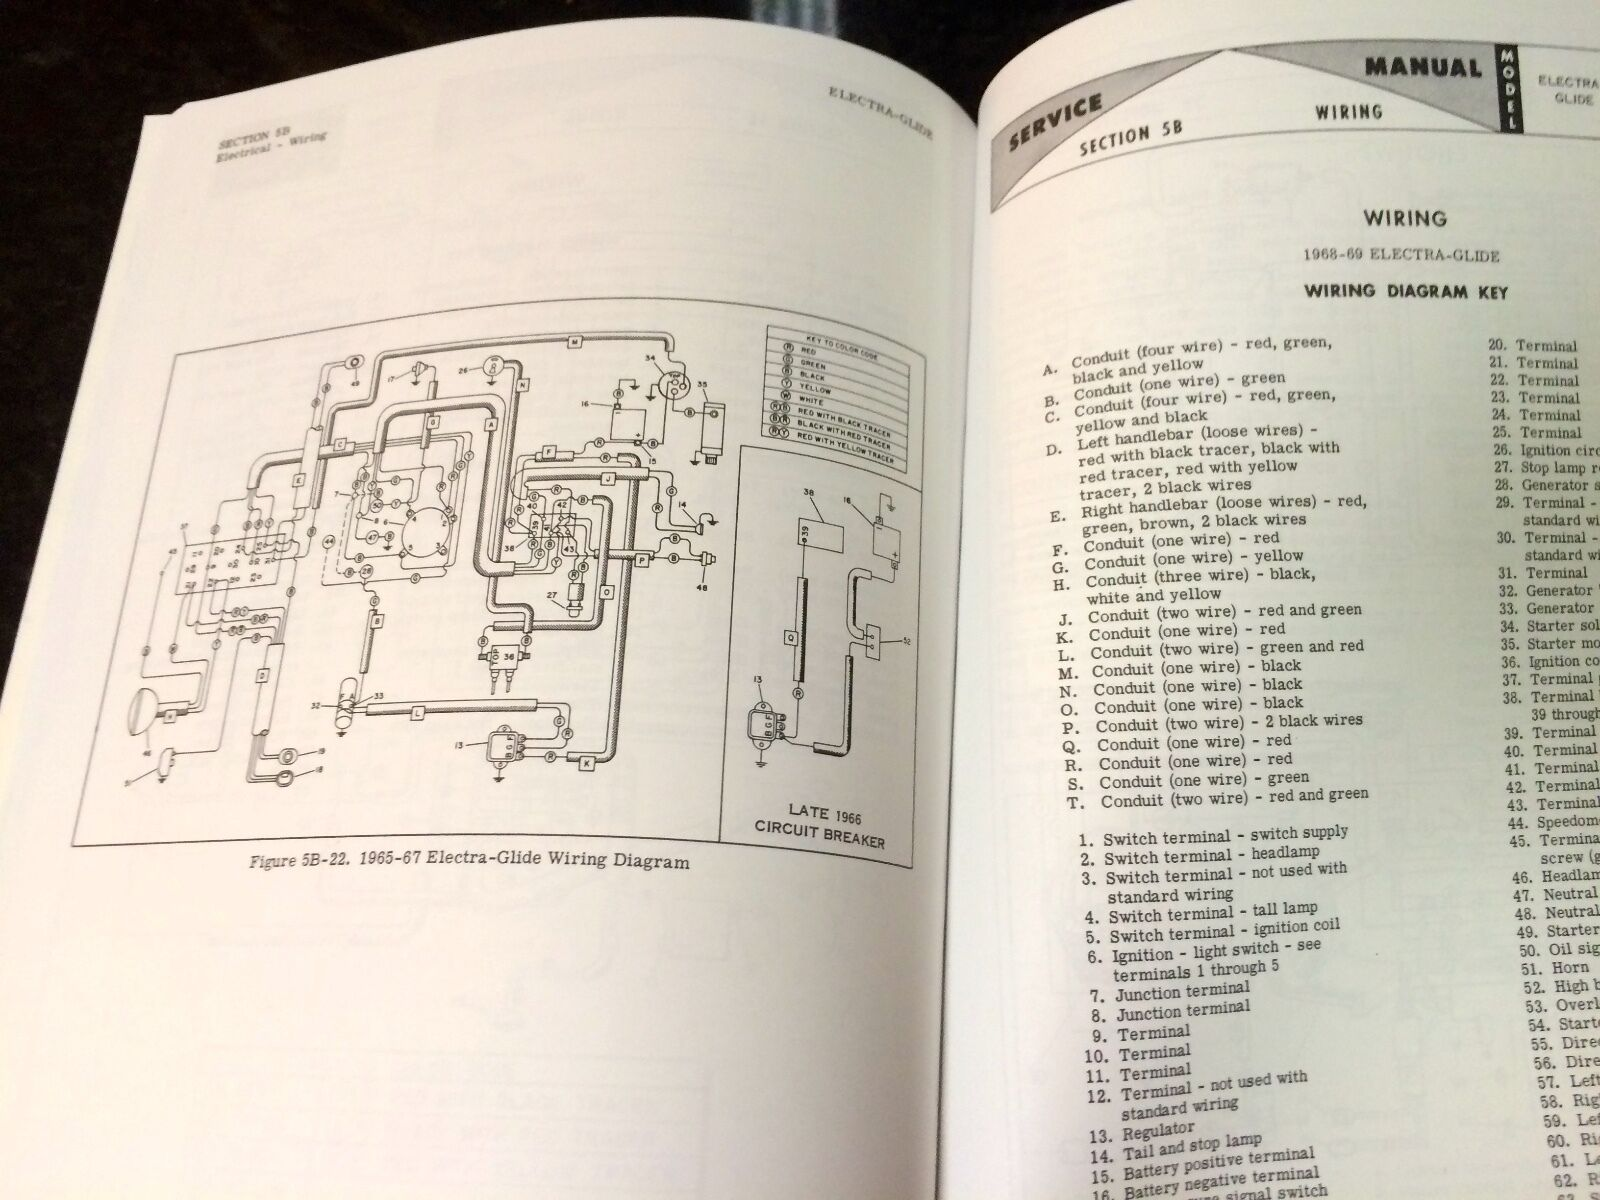 hight resolution of harley fl flh service manual 1959 to 1969 panhead shovelhead electra 1966 flh cycle electric wiring diagrams